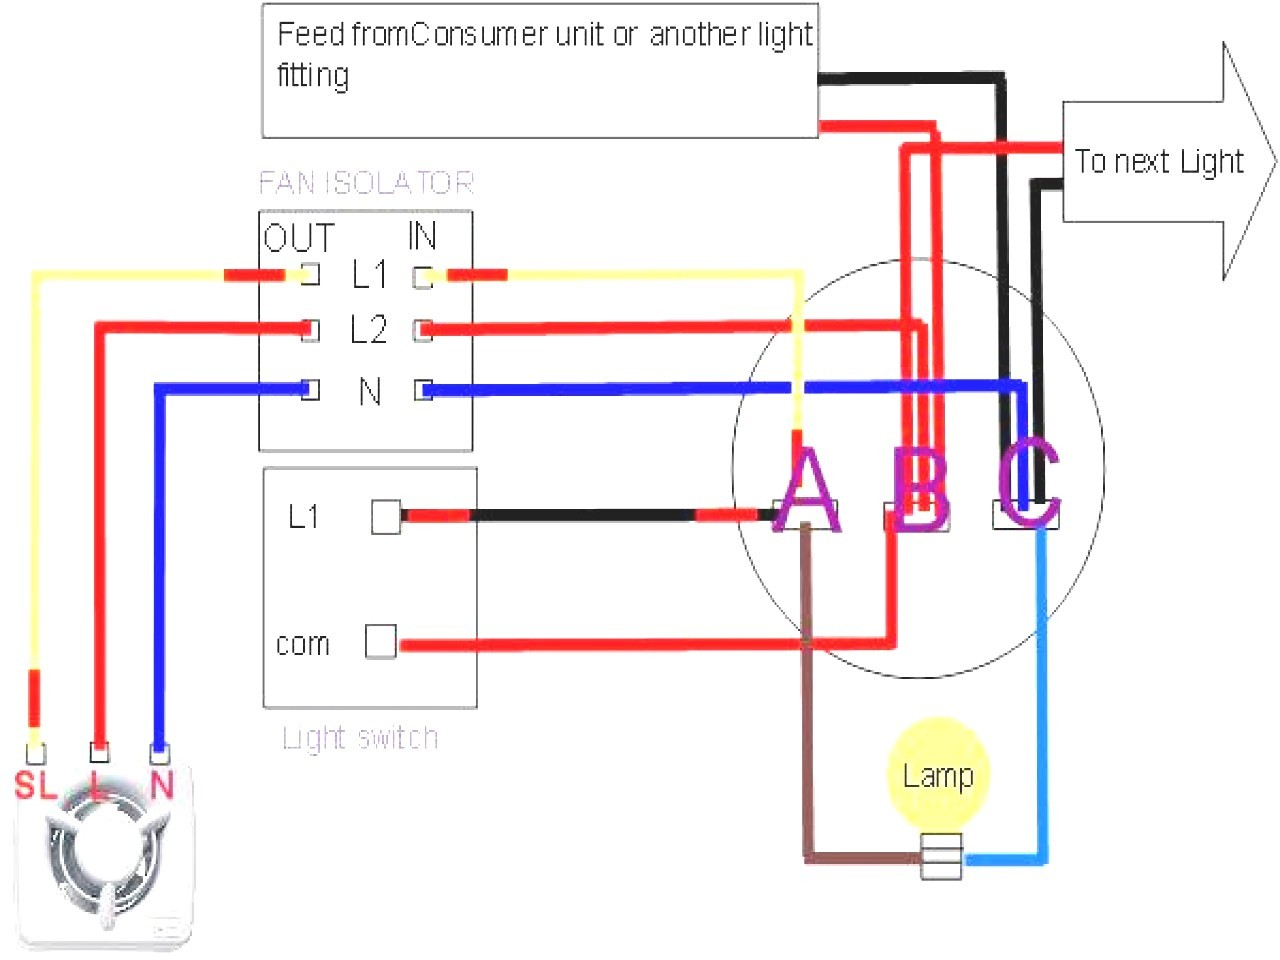 Leviton Double Switch Wiring Diagram | Wiring Library - Leviton Double Pole Switch Wiring Diagram